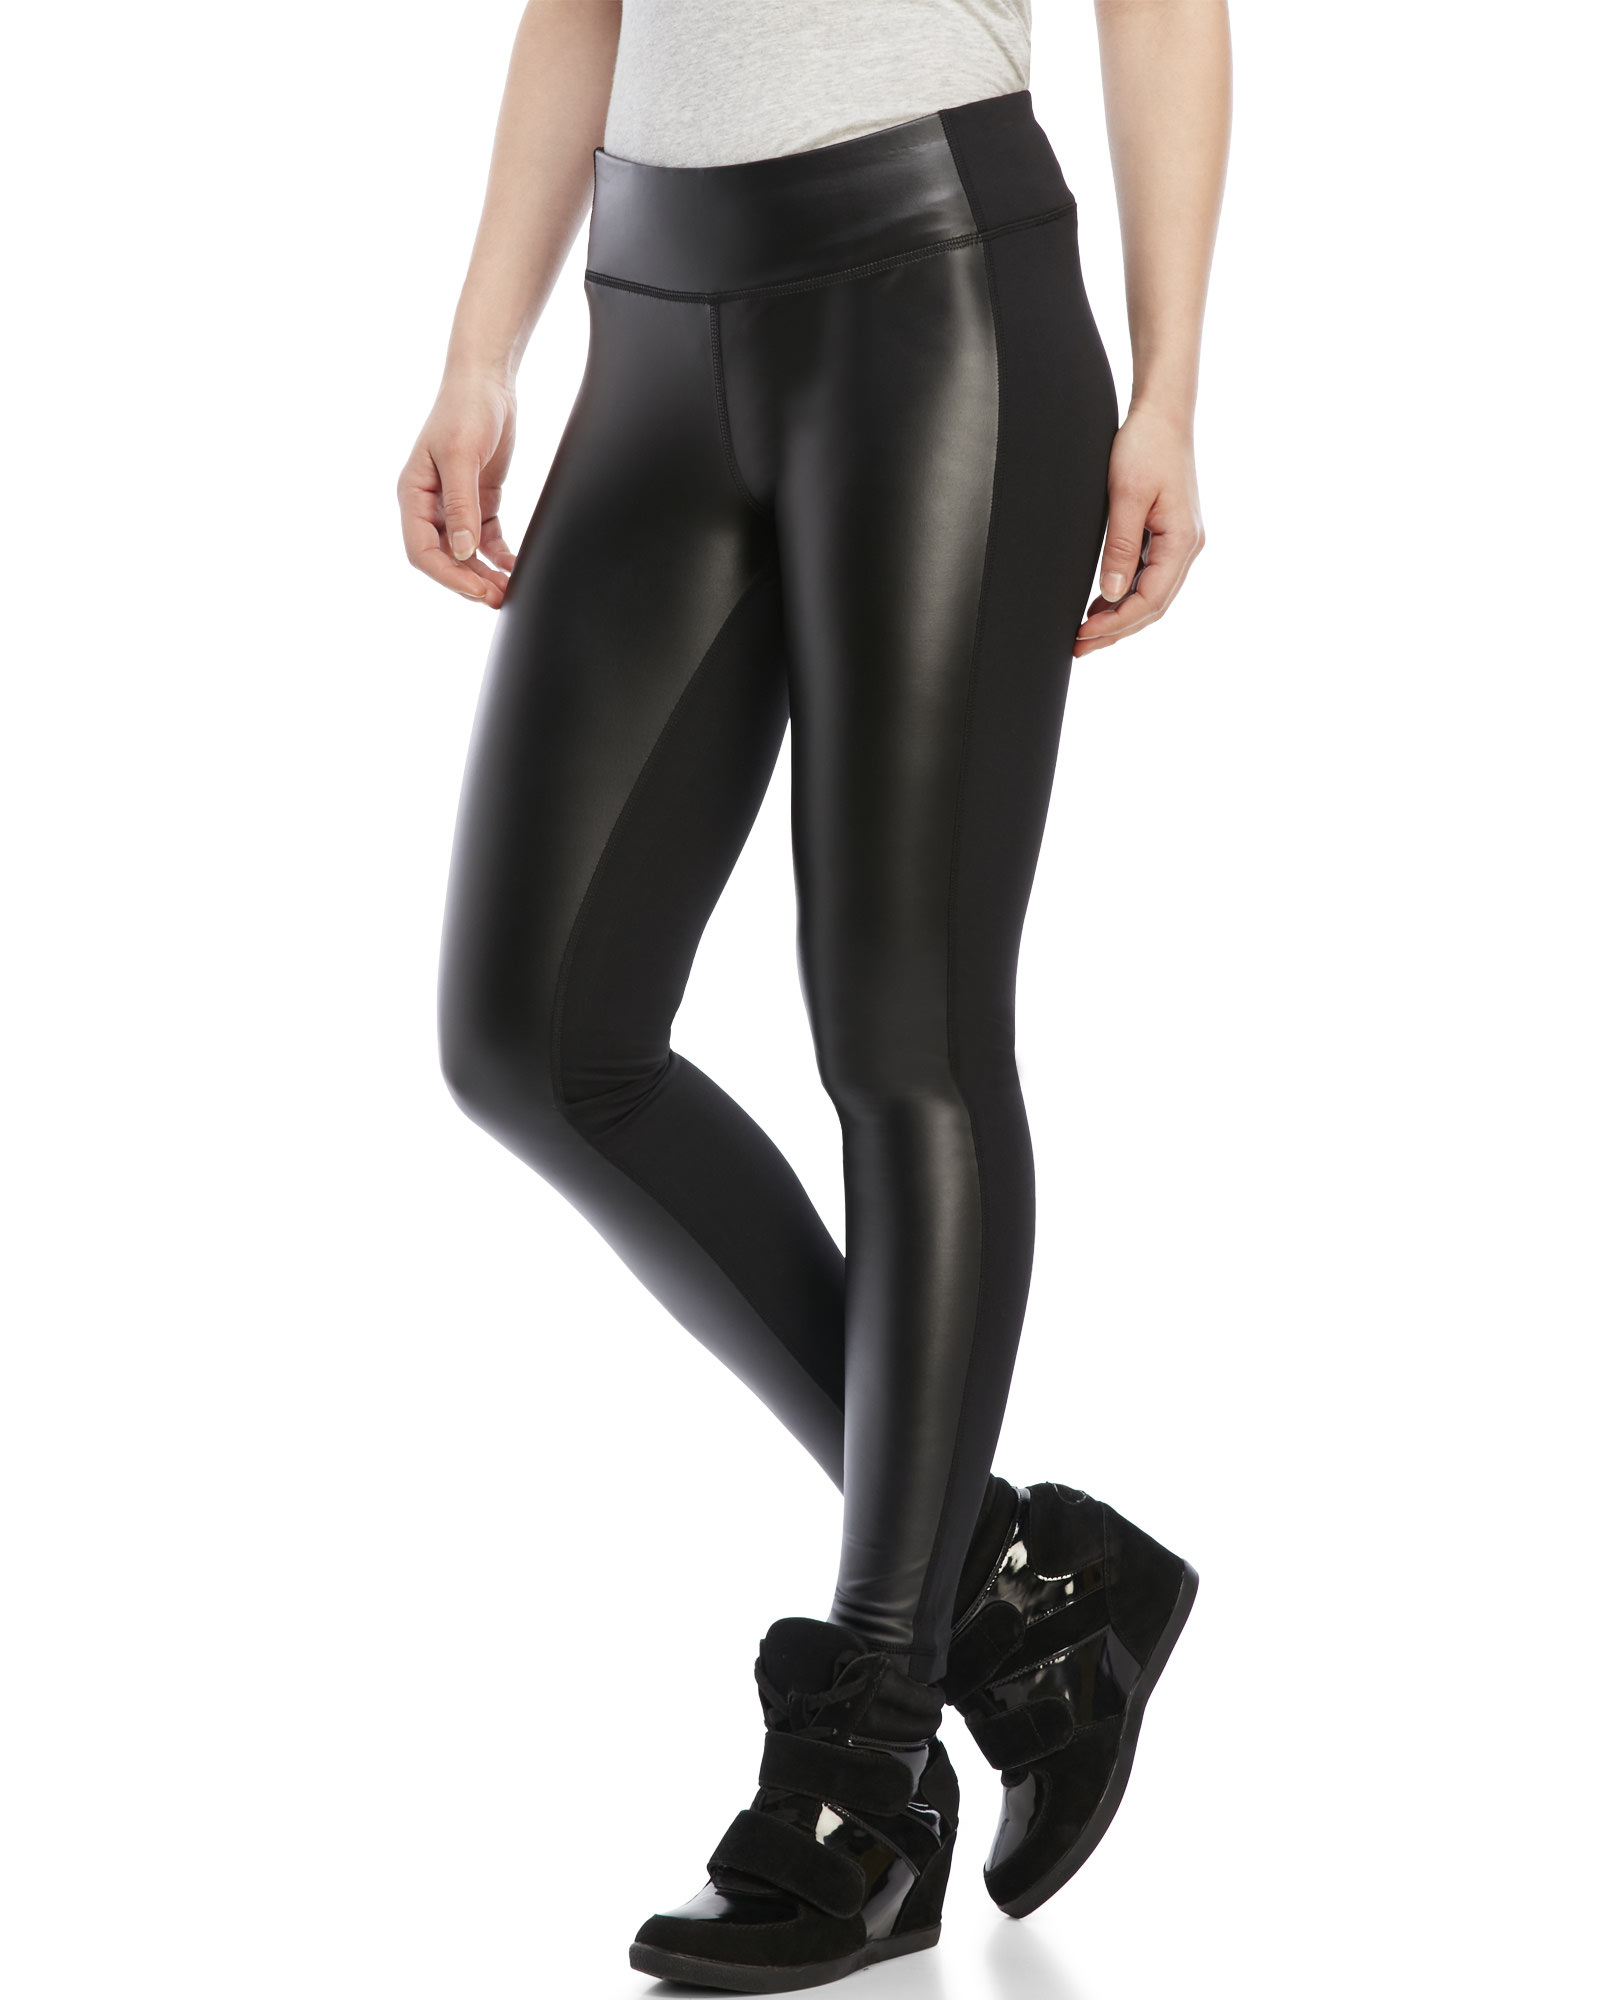 af18bf5c8ca17 90 Degree By Reflex Faux Leather Front Leggings in Black - Lyst